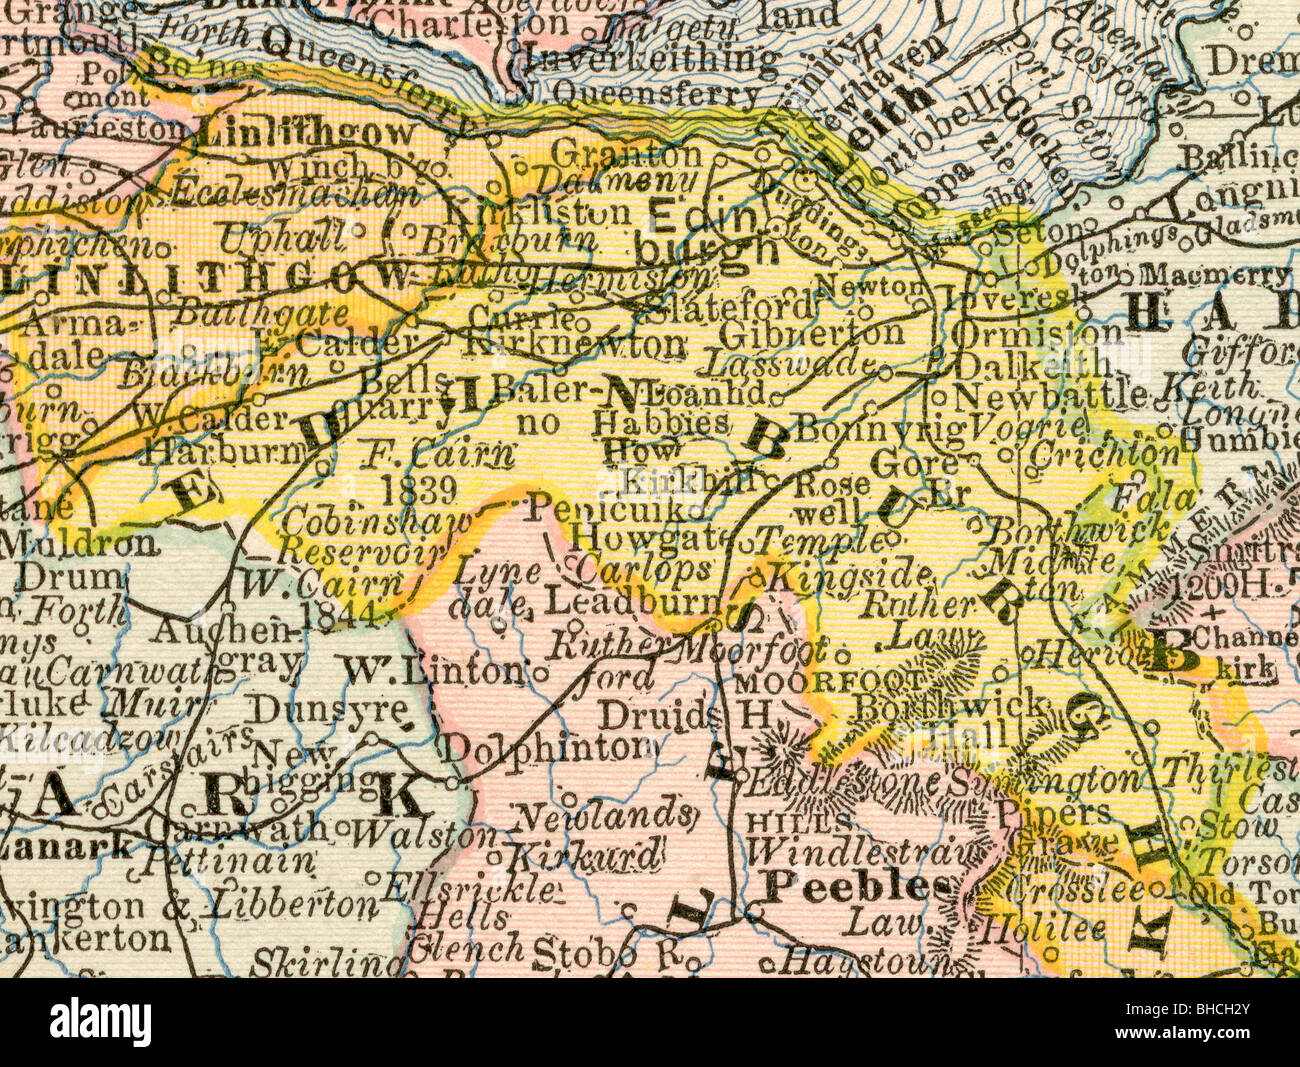 Original old map of Edinburgh County (Scotland) from 1884 geography